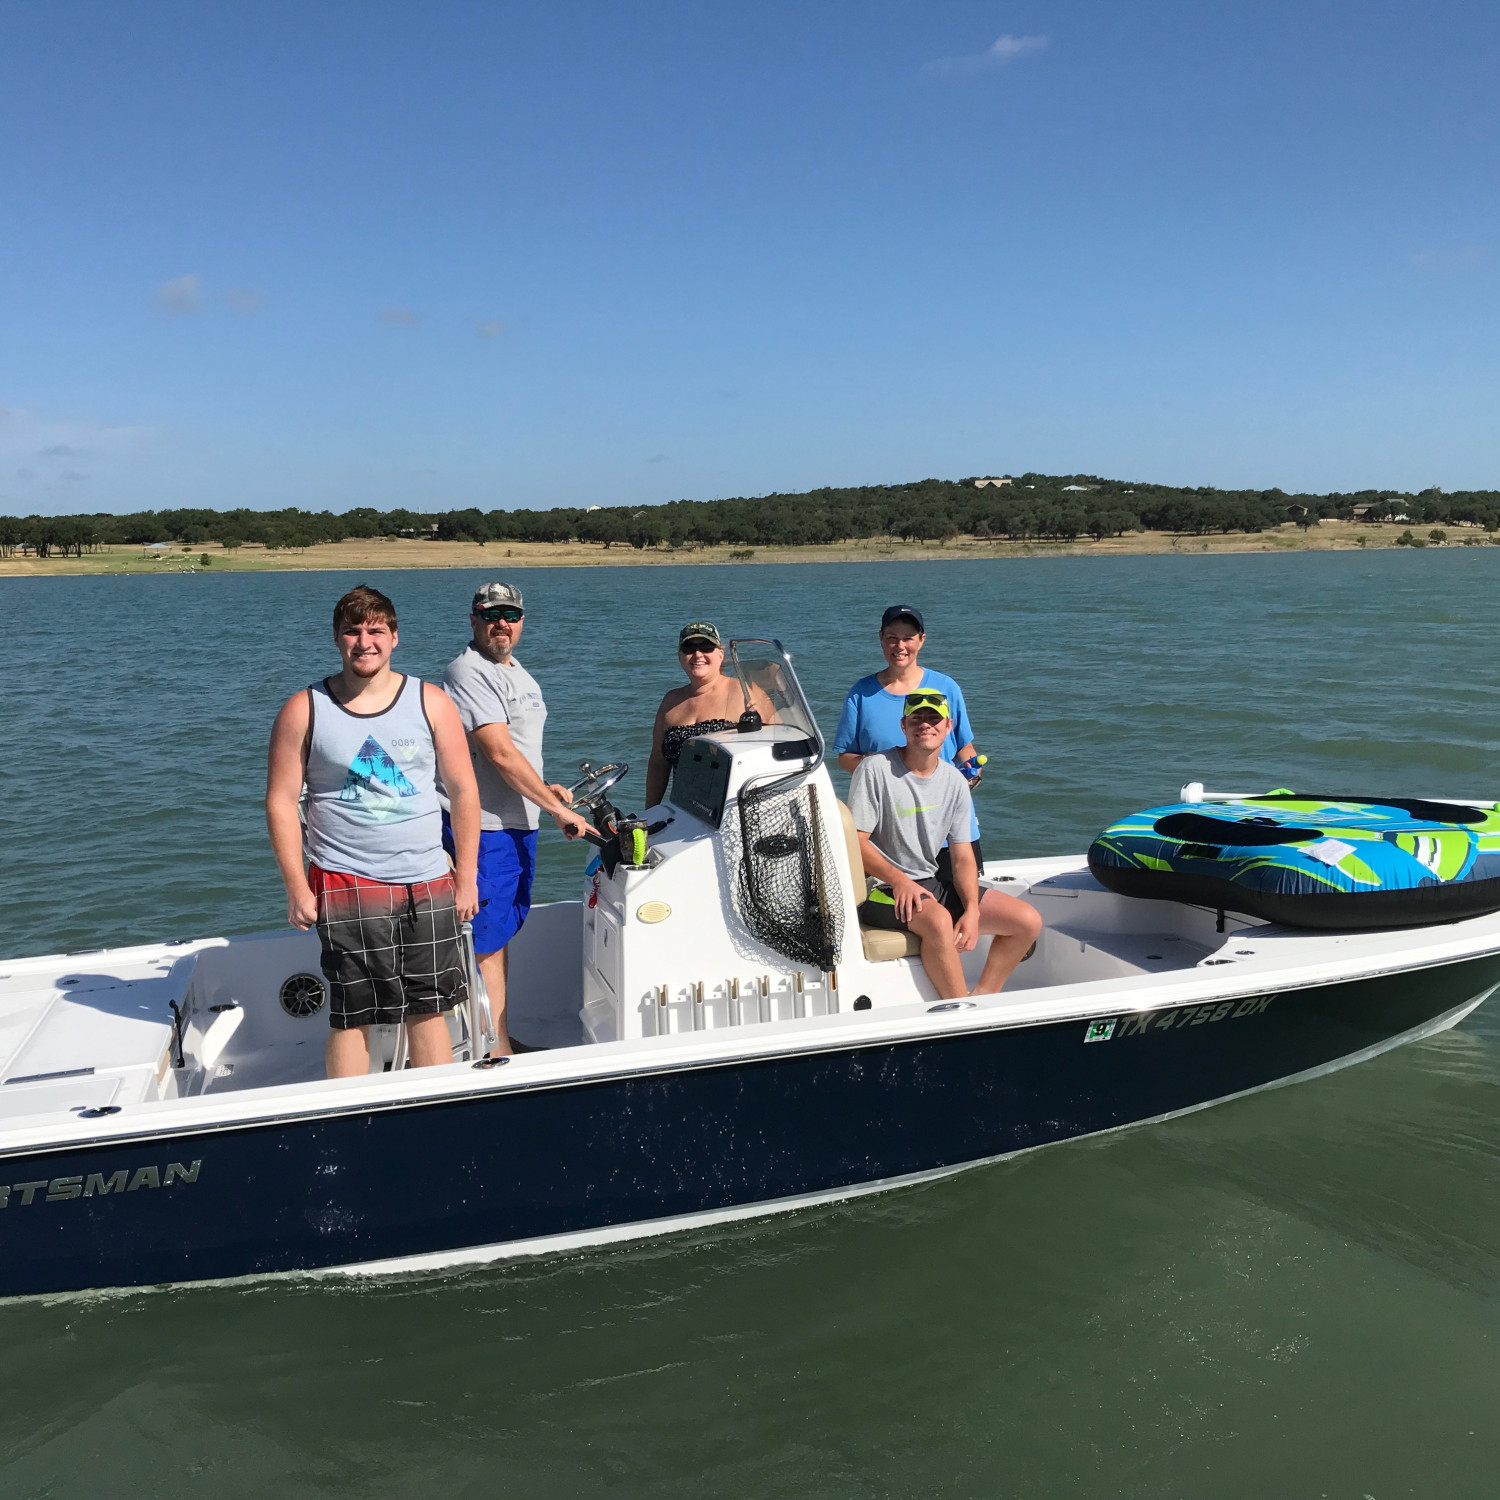 Title: Going Tubing - On board their Sportsman Tournament 234 Bay Boat - Location: Canyan Lake, Texas. Participating in the Photo Contest #SportsmanMarch2018